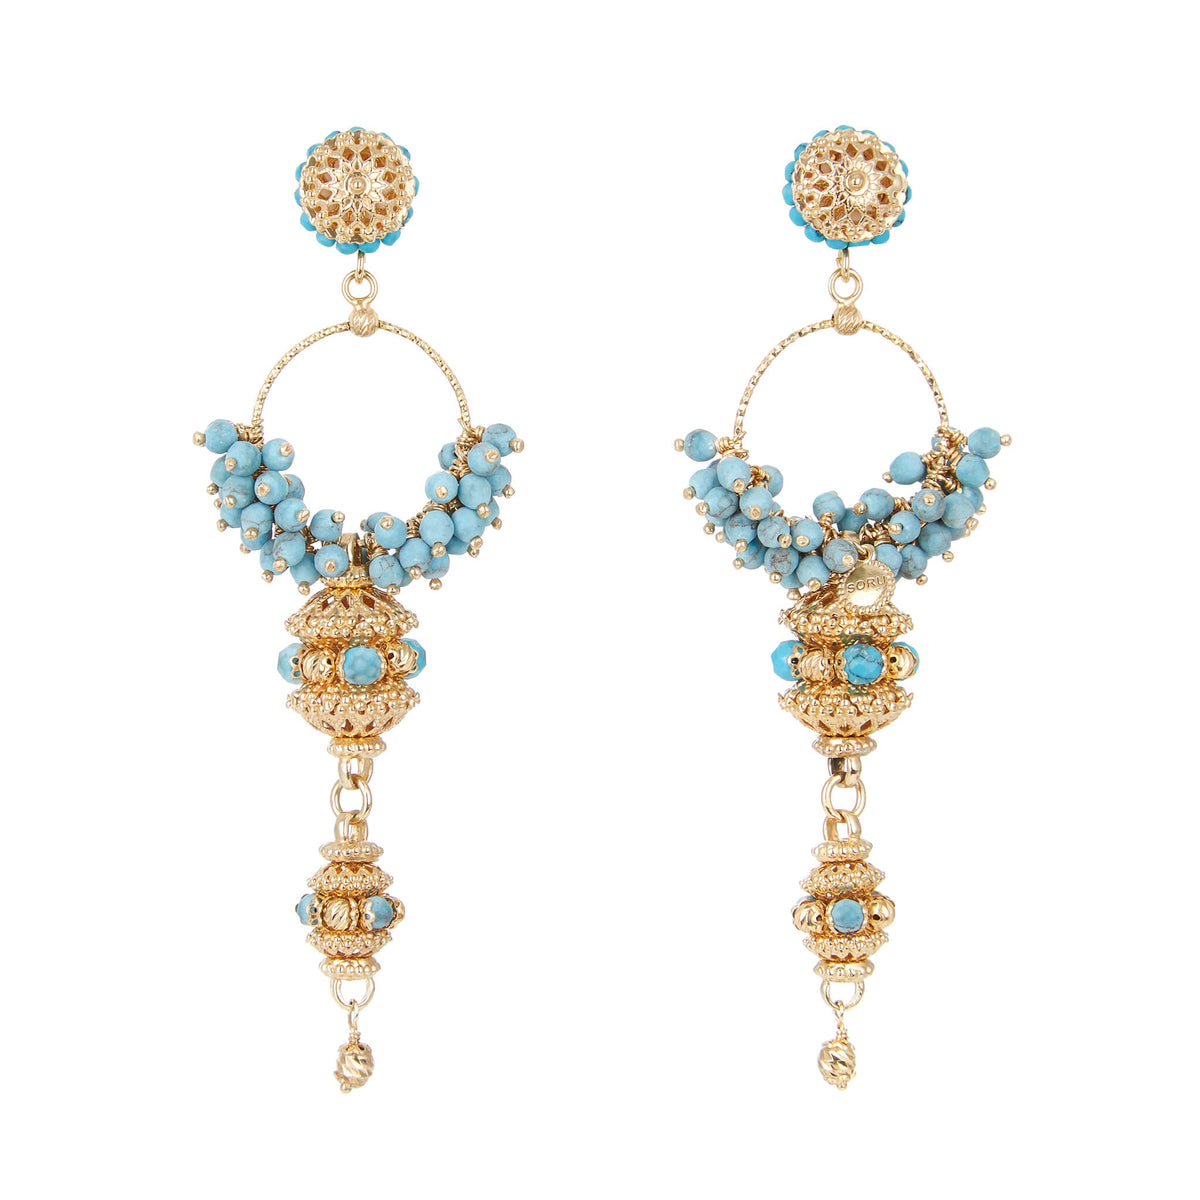 Turquoise hoop cluster earrings